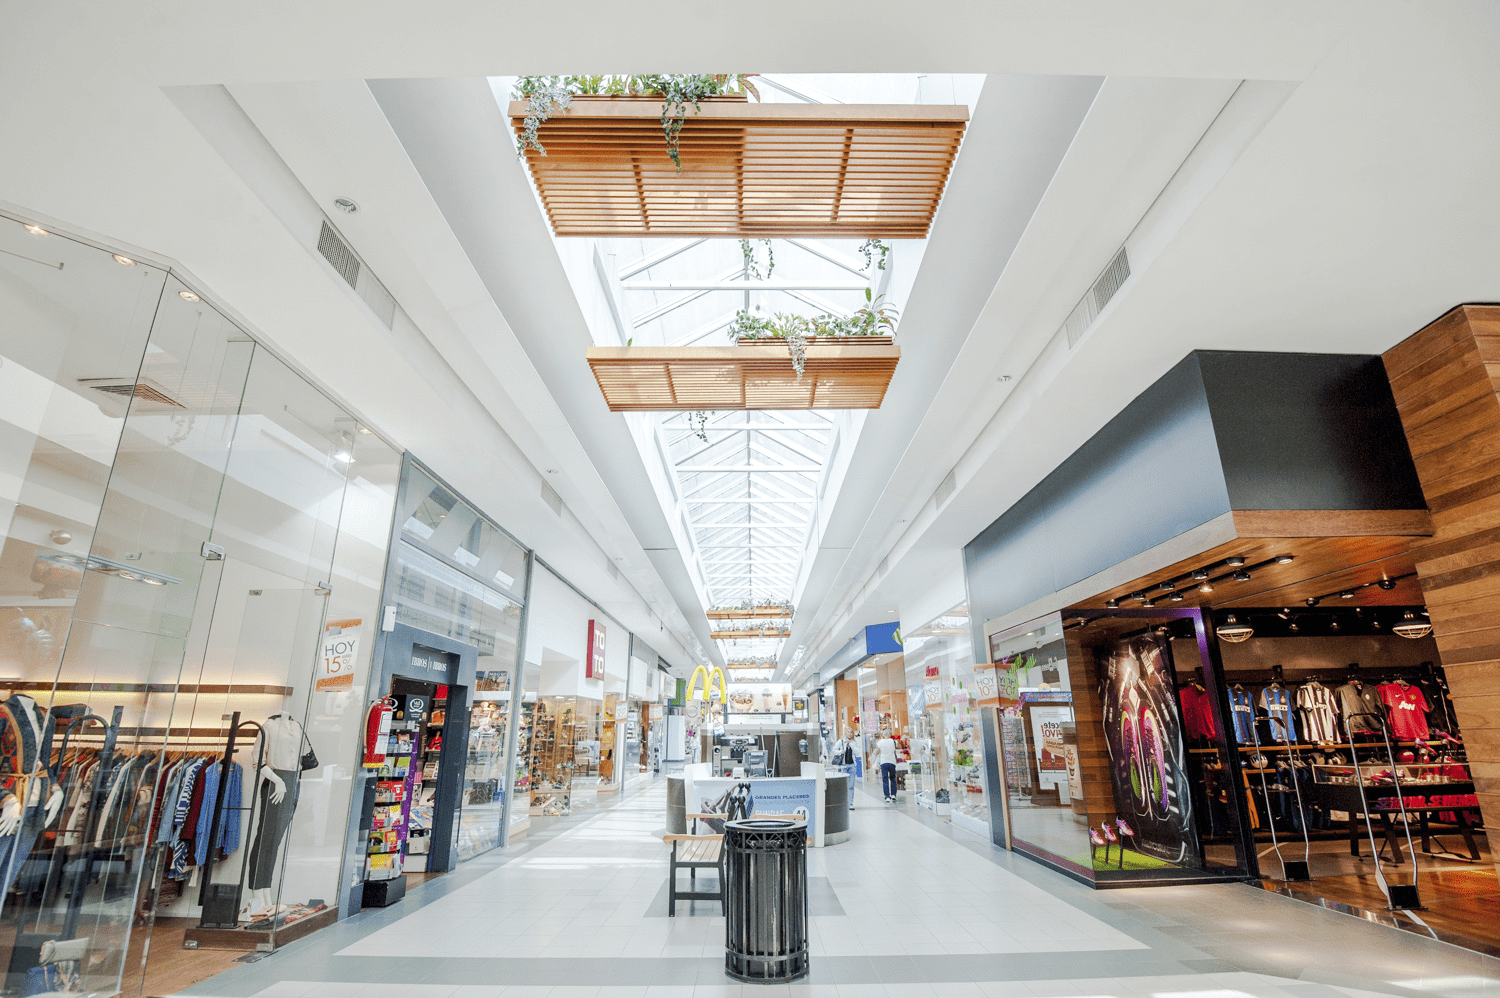 interior of a shopping mall looking down the corridor with glass exterior stores on either side. seating, trash cans and kiosks in the center